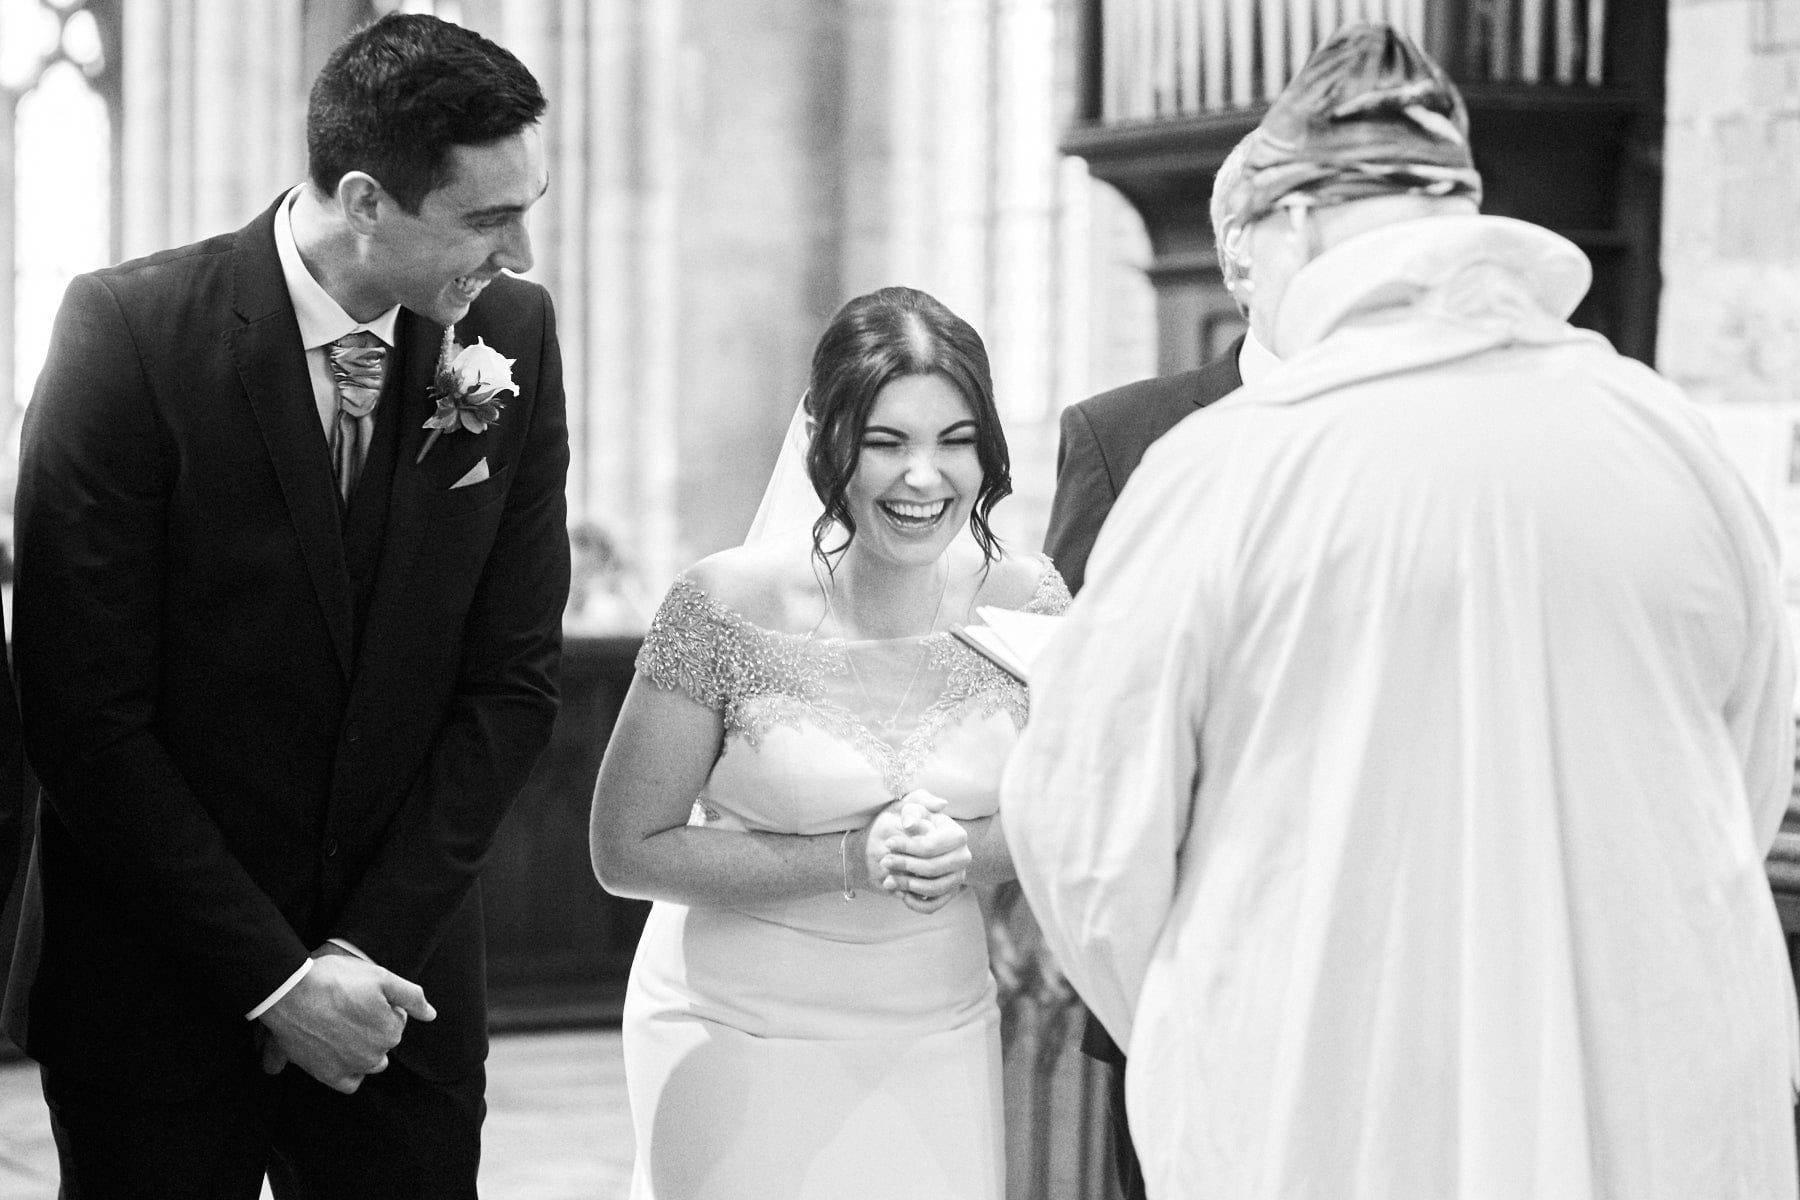 A bride and her groom get the giggles during their wedding ceremony.